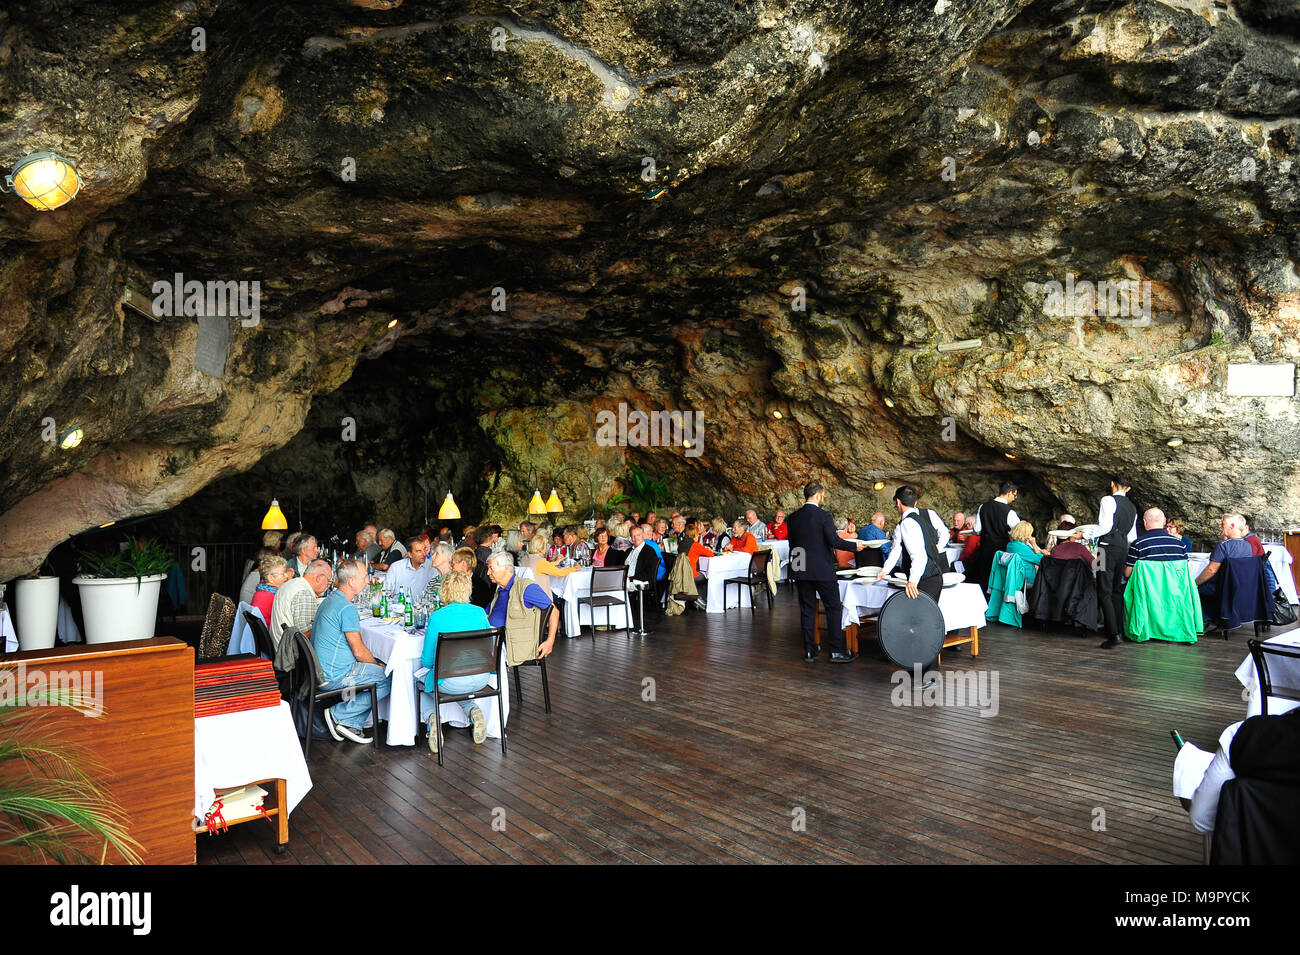 Grotta Palazzese High Resolution Stock Photography And Images Alamy,3 Bedroom House Designs Pictures In Nigeria